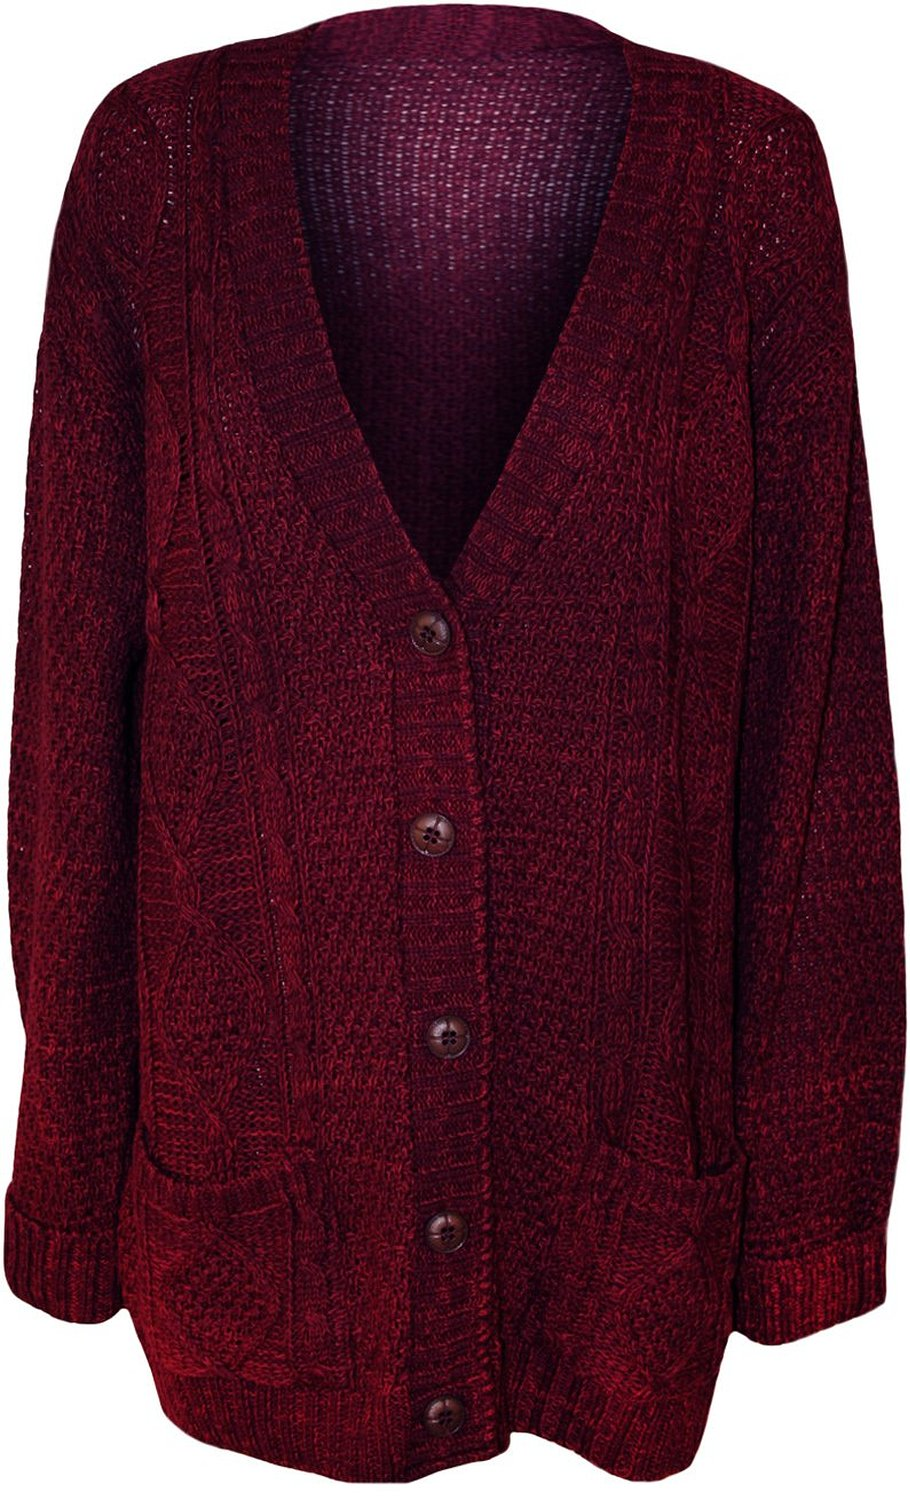 Wearall women's plus size button cable knit cardigan at amazon women's clothing store: pullover sweaters